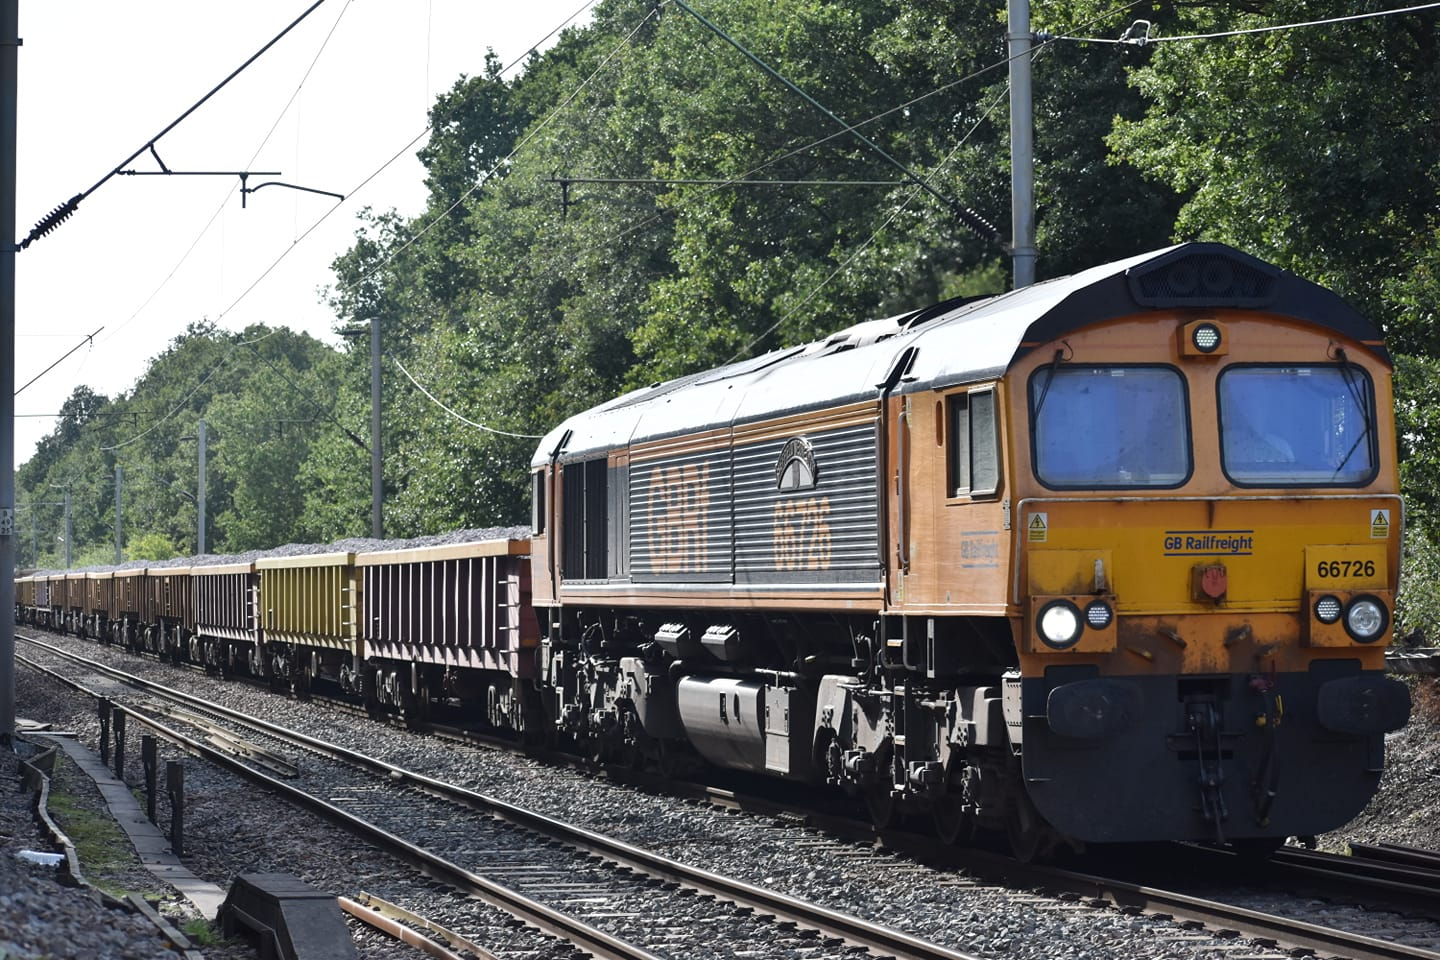 66726 GBRf 6T64 WHITEMOOR-STRATFORD-IPSWICH (CHITTS HILL) 12-9-20 (JAMES COLE)